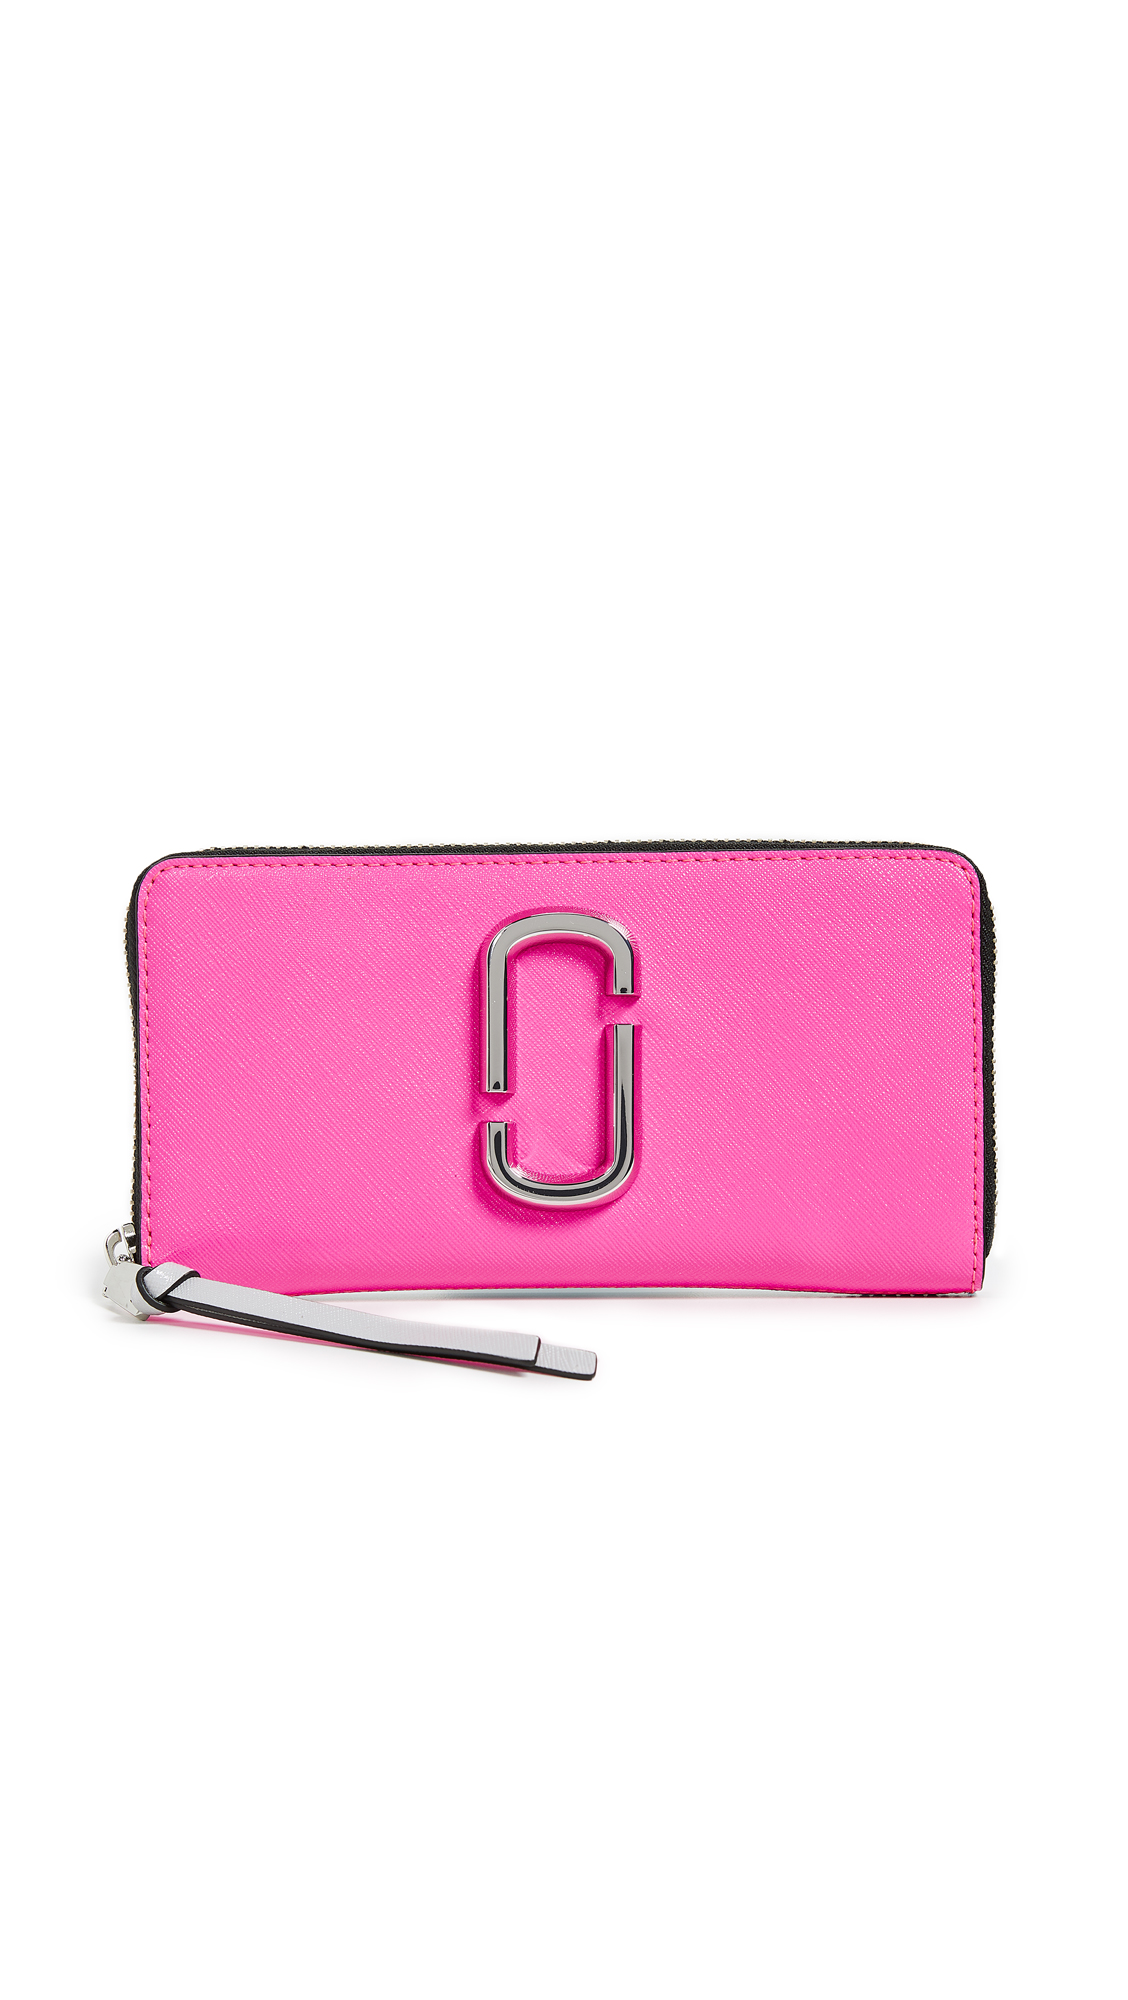 Marc Jacobs Snapshot Standard Continental Wallet - Bright Pink Multi